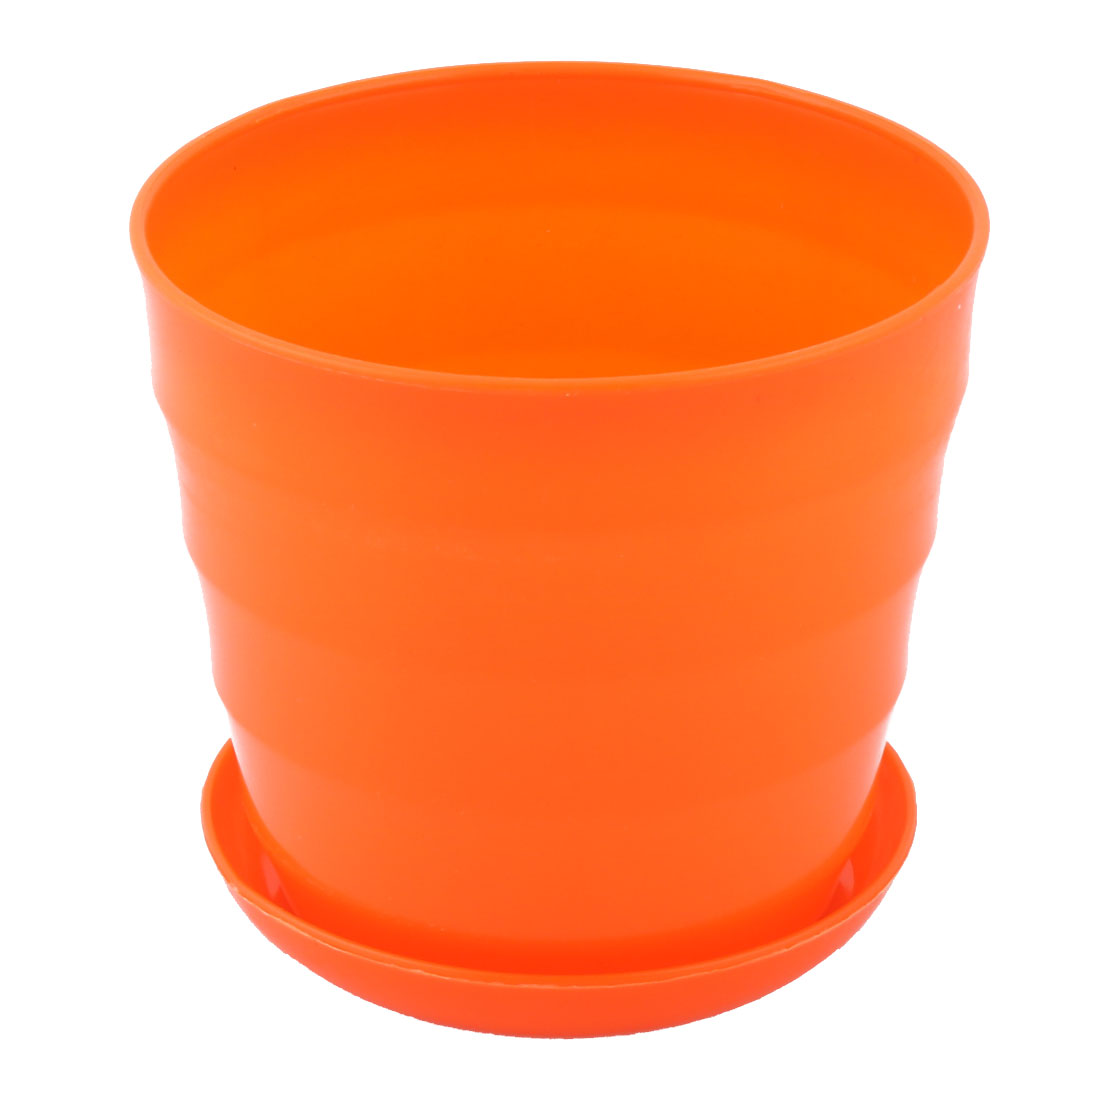 Orange Plant Pot Garden Design Ideas